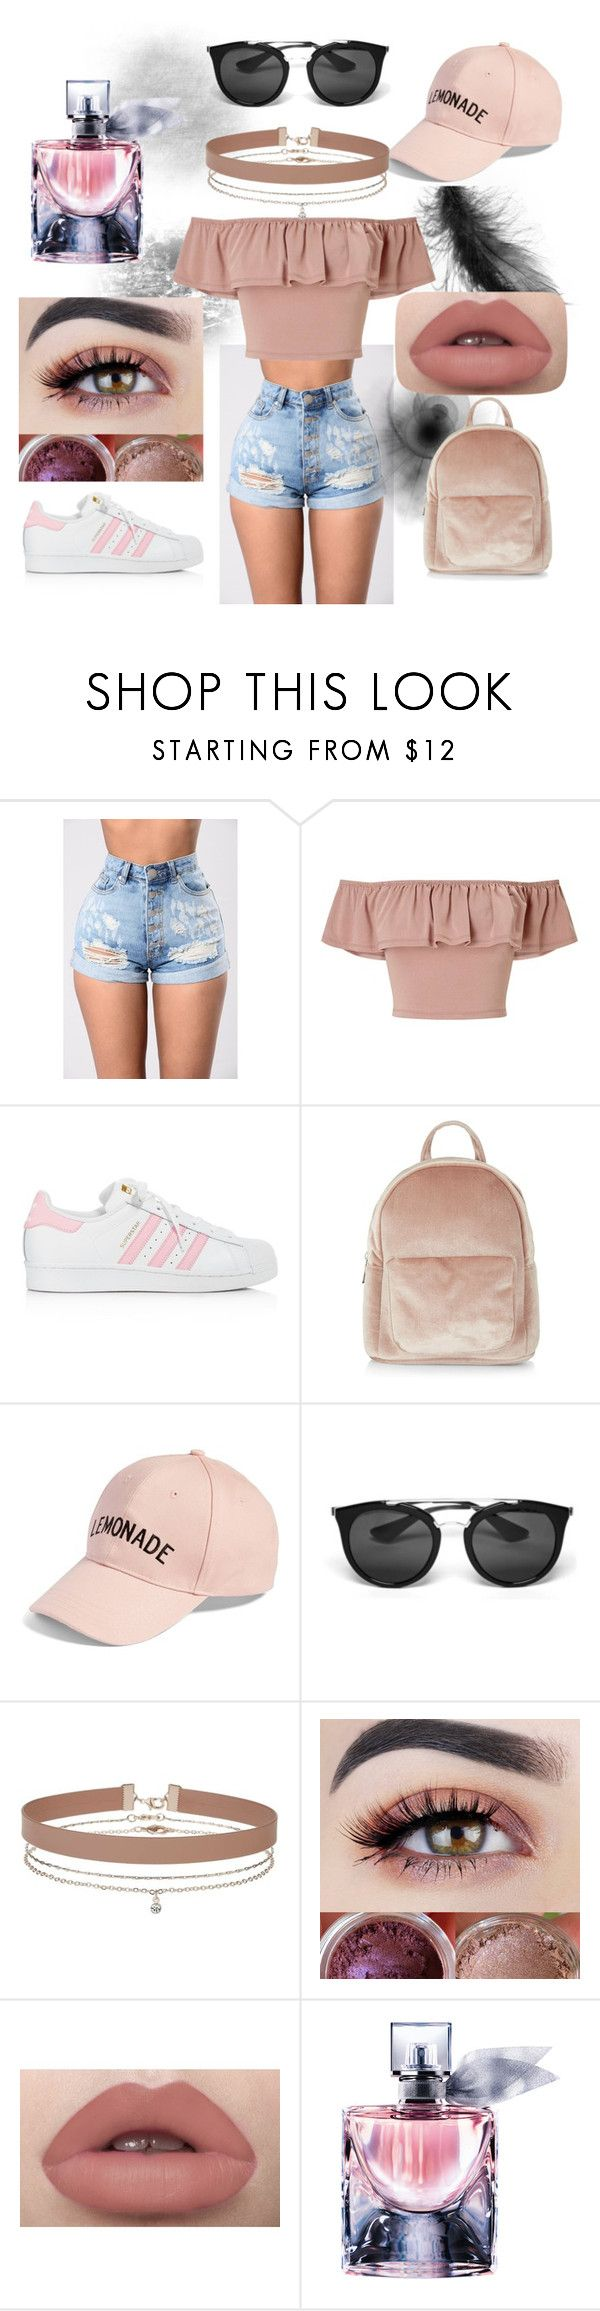 """outfit juvenil casual"" by mariapazmarixxd on Polyvore featuring moda, Miss Selfridge, adidas, New Look, Amici Accessories, Prada y Lancôme"